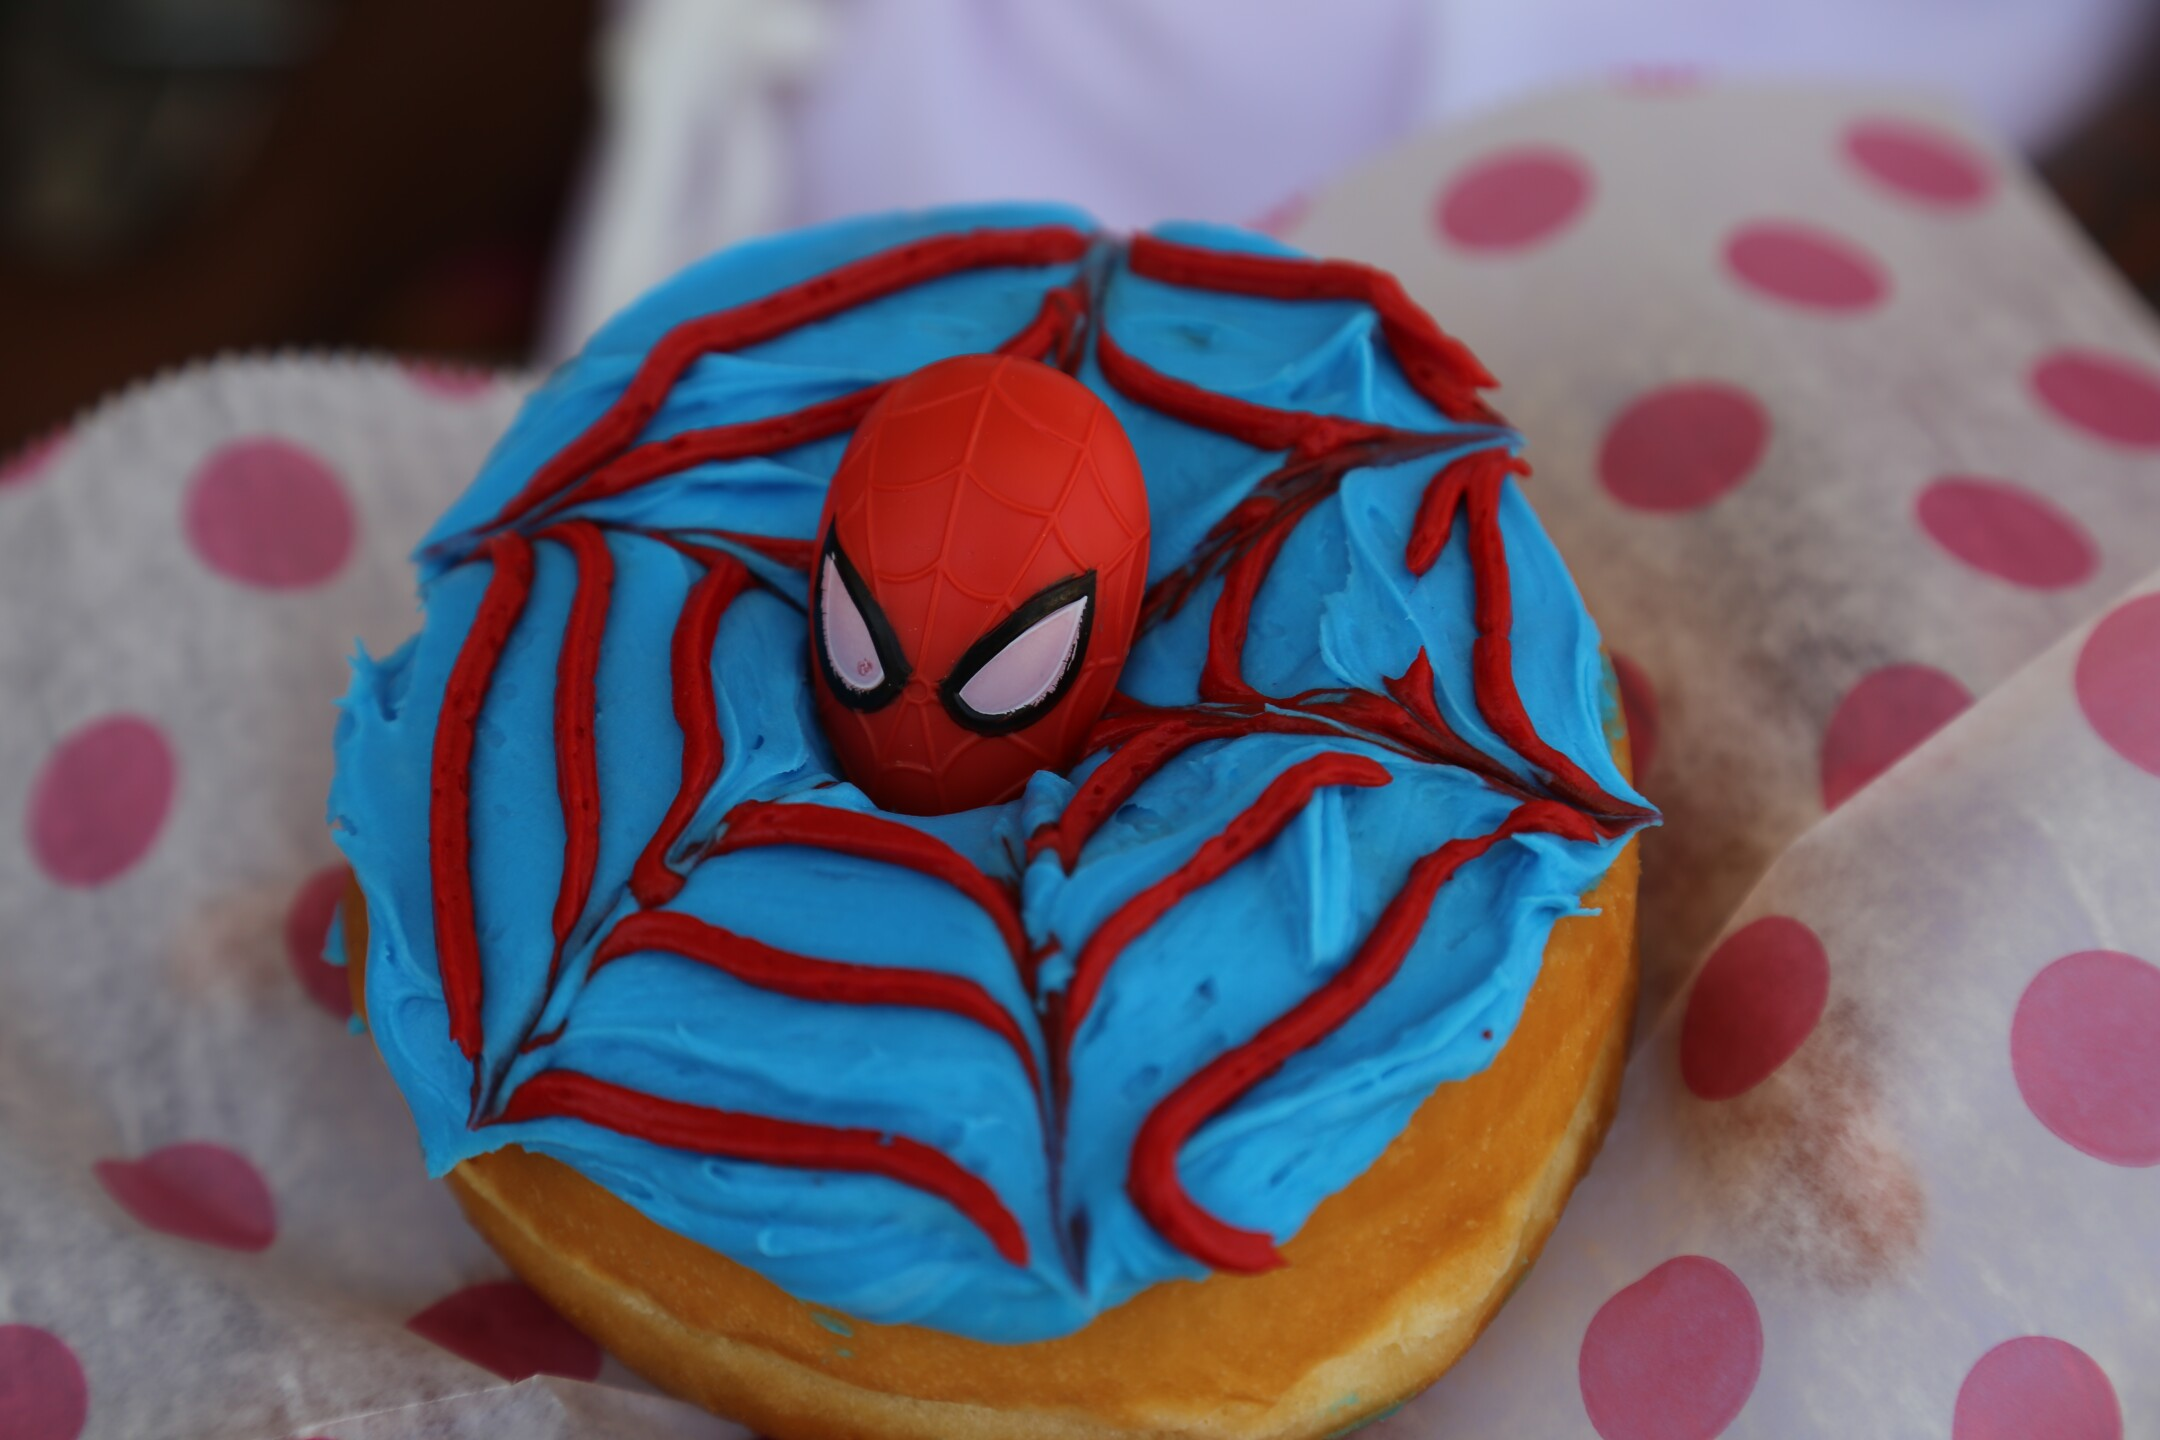 Spider Man donut from Fluffy Donuts